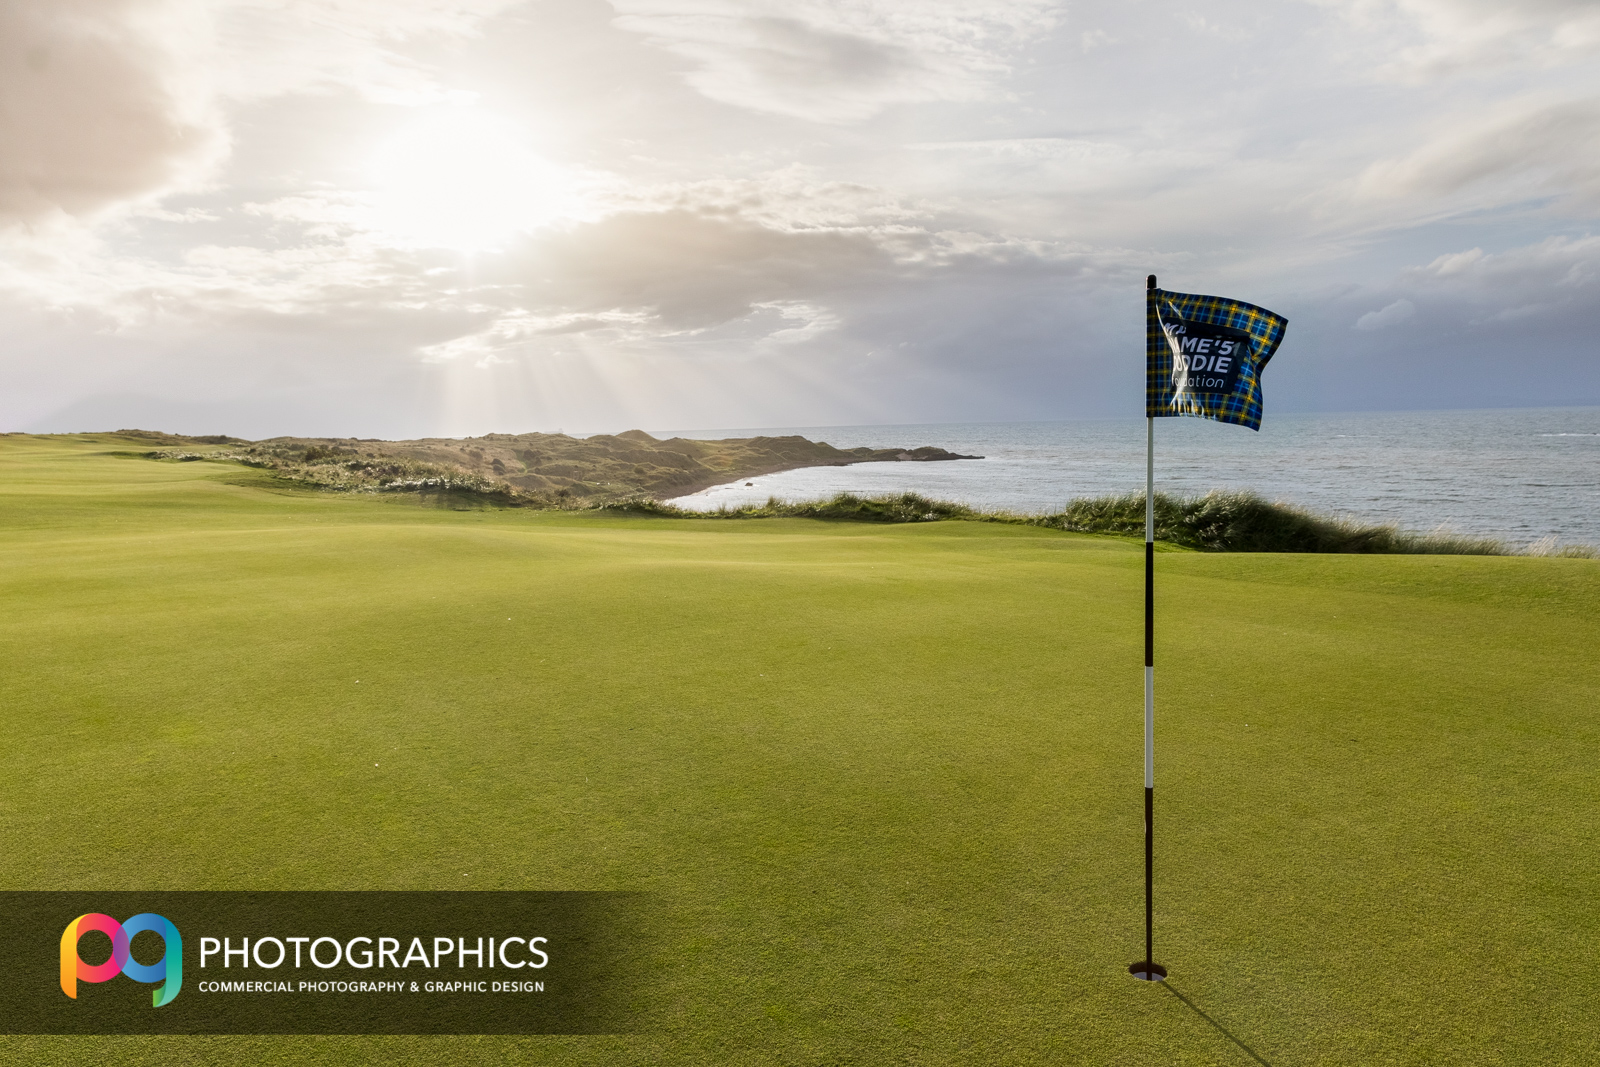 charity-golf-pr-event-photography-glasgow-edinburgh-scotland-28.jpg